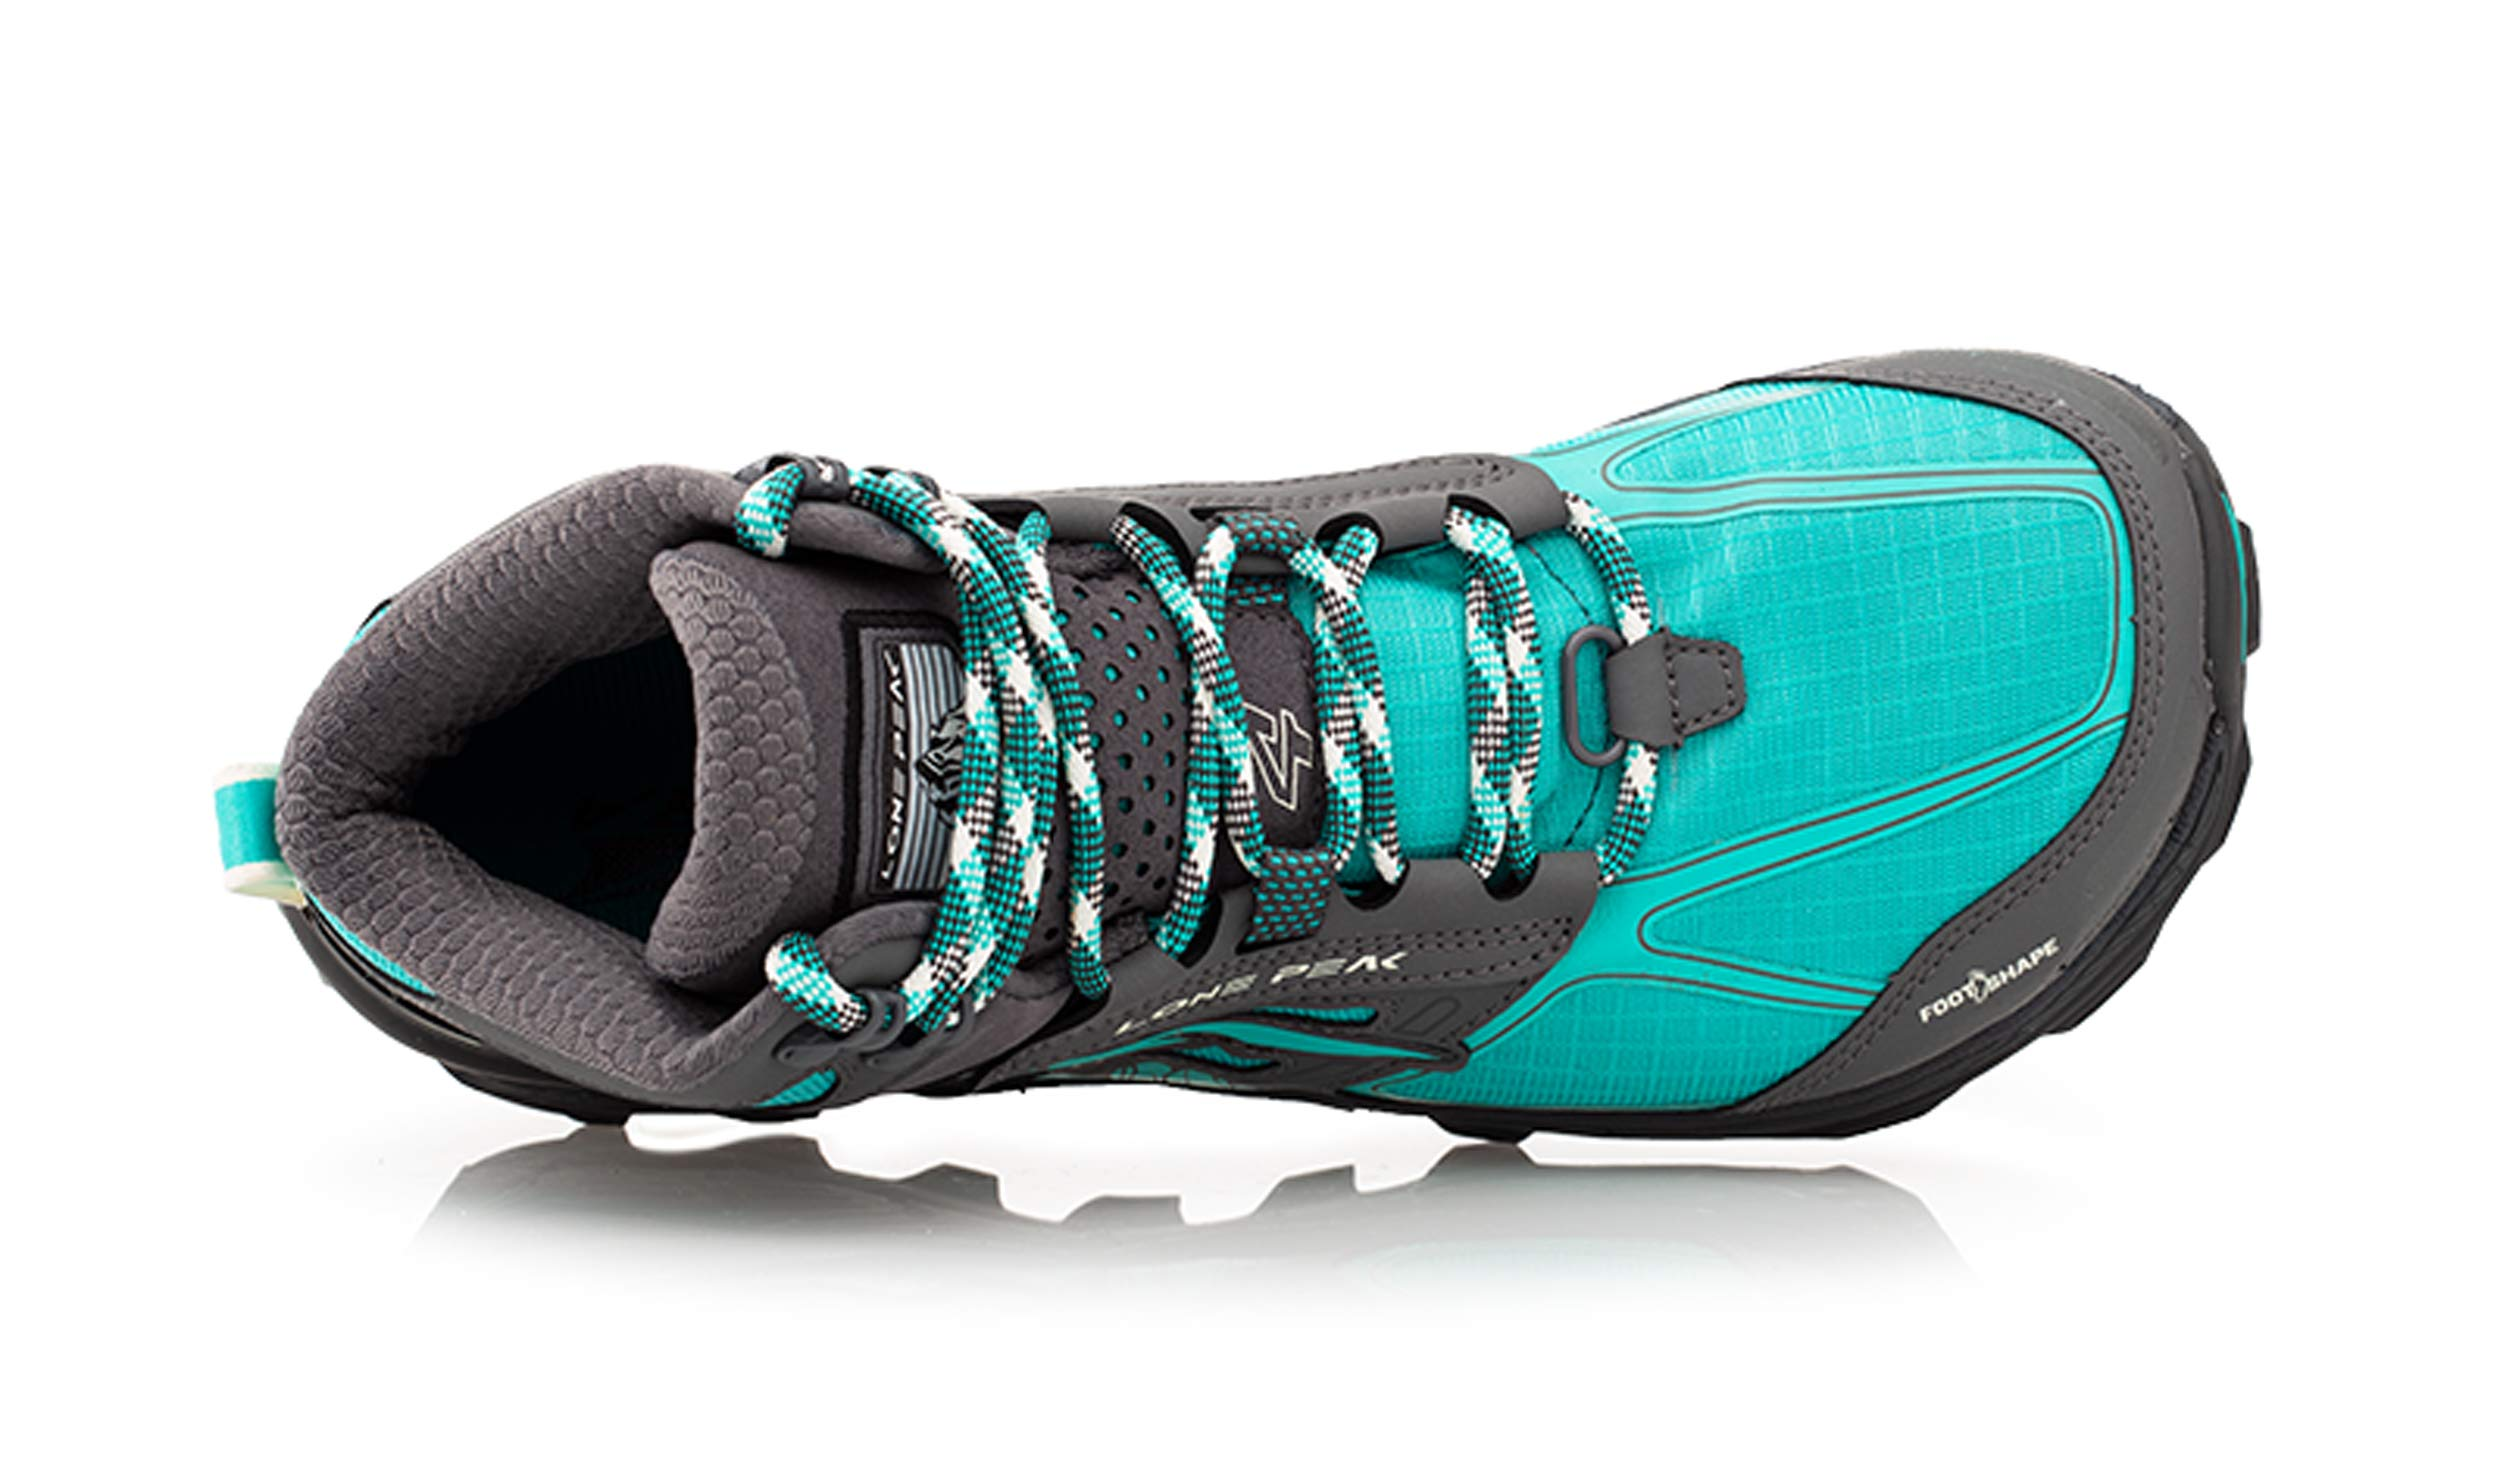 Altra Women's Lone Peak 4 Mid Mesh Trail Running Shoe, Teal/Gray - 6 B(M) US by Altra (Image #3)